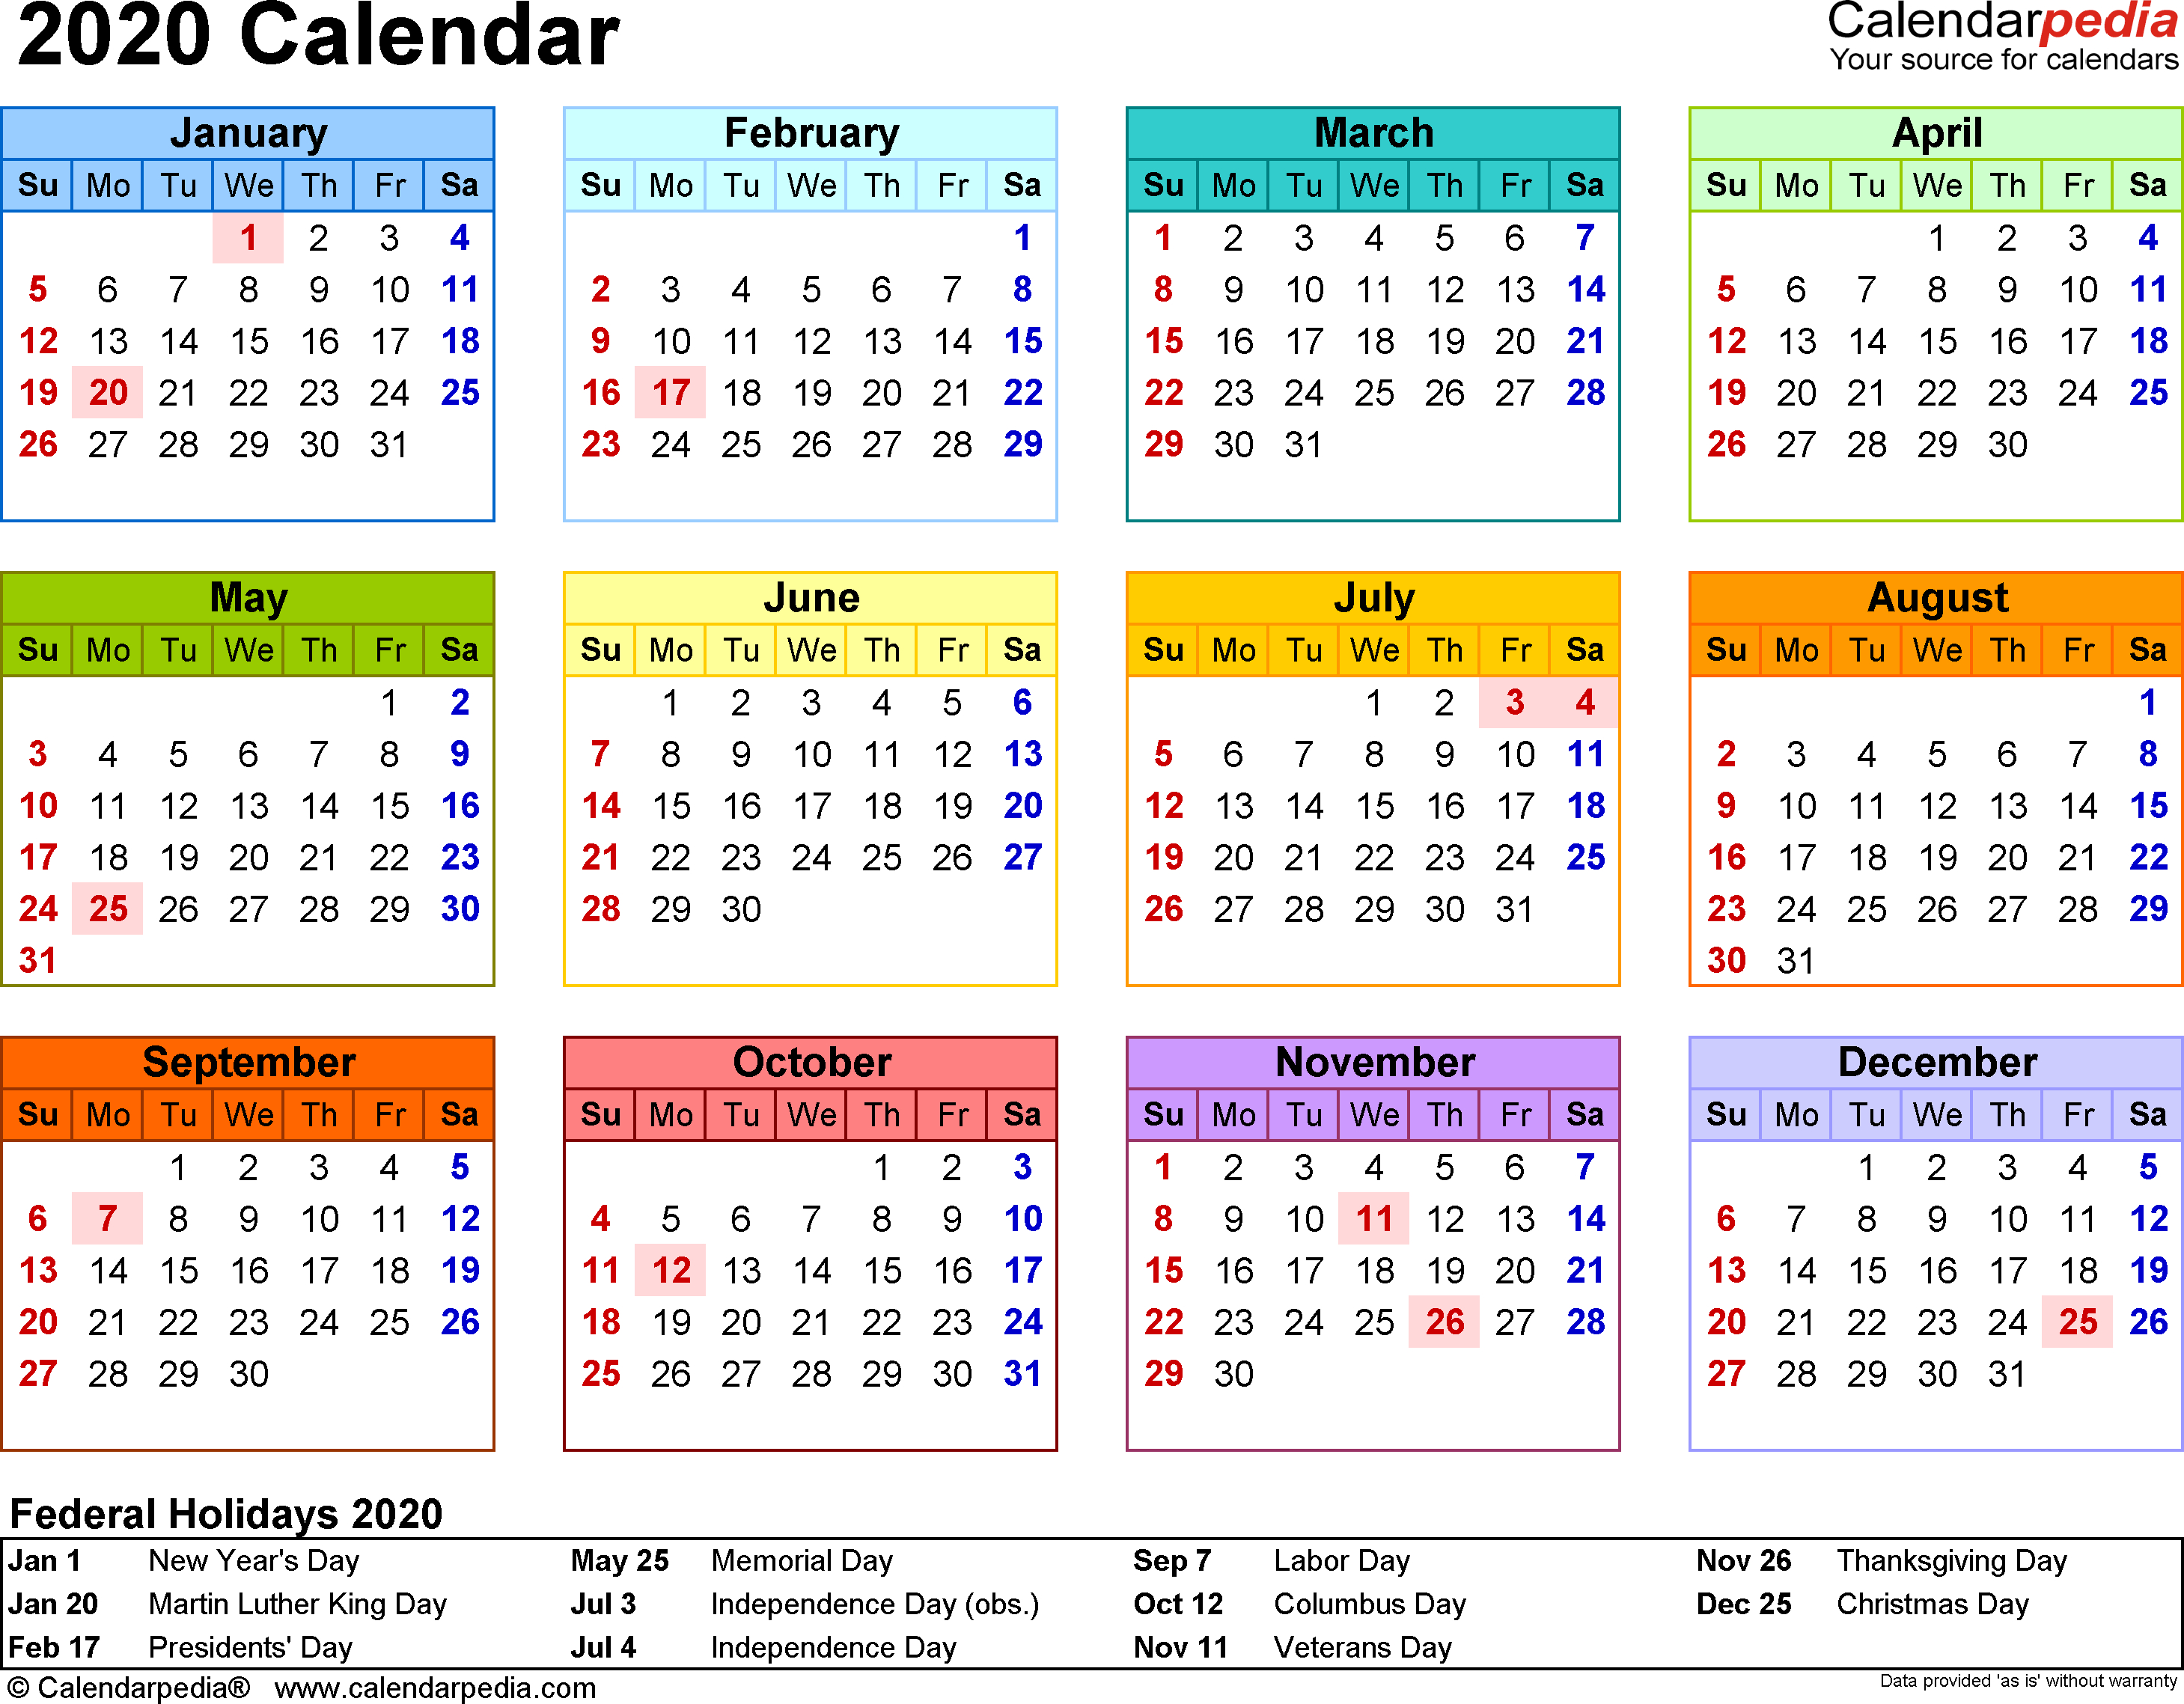 2020 Calendar - Download 18 Free Printable Excel Templates pertaining to 2020 Aramco Calendar